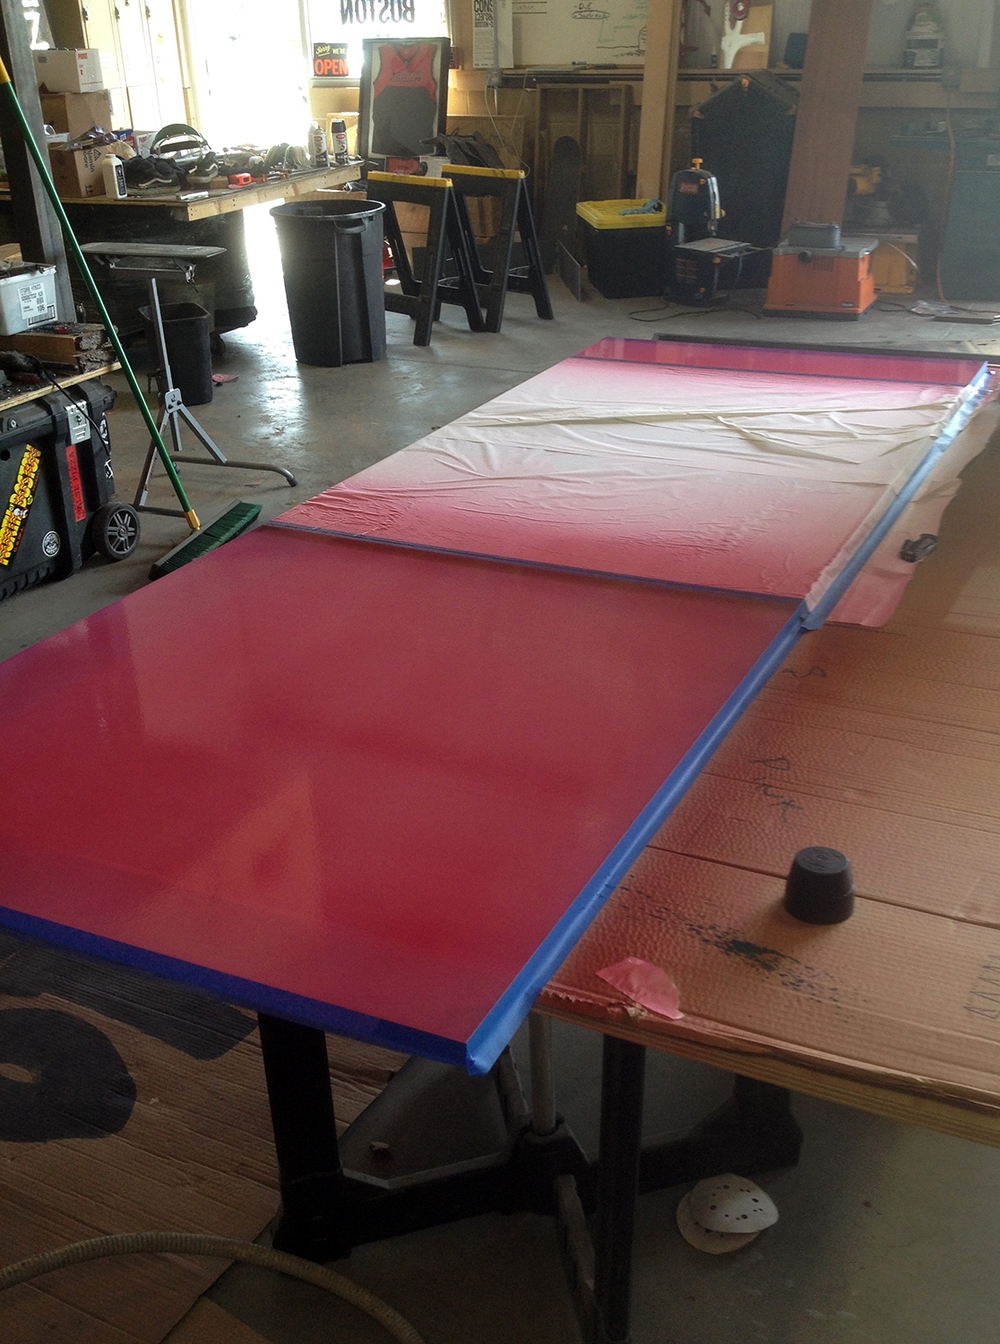 Spray finishing the final color on the table underside.